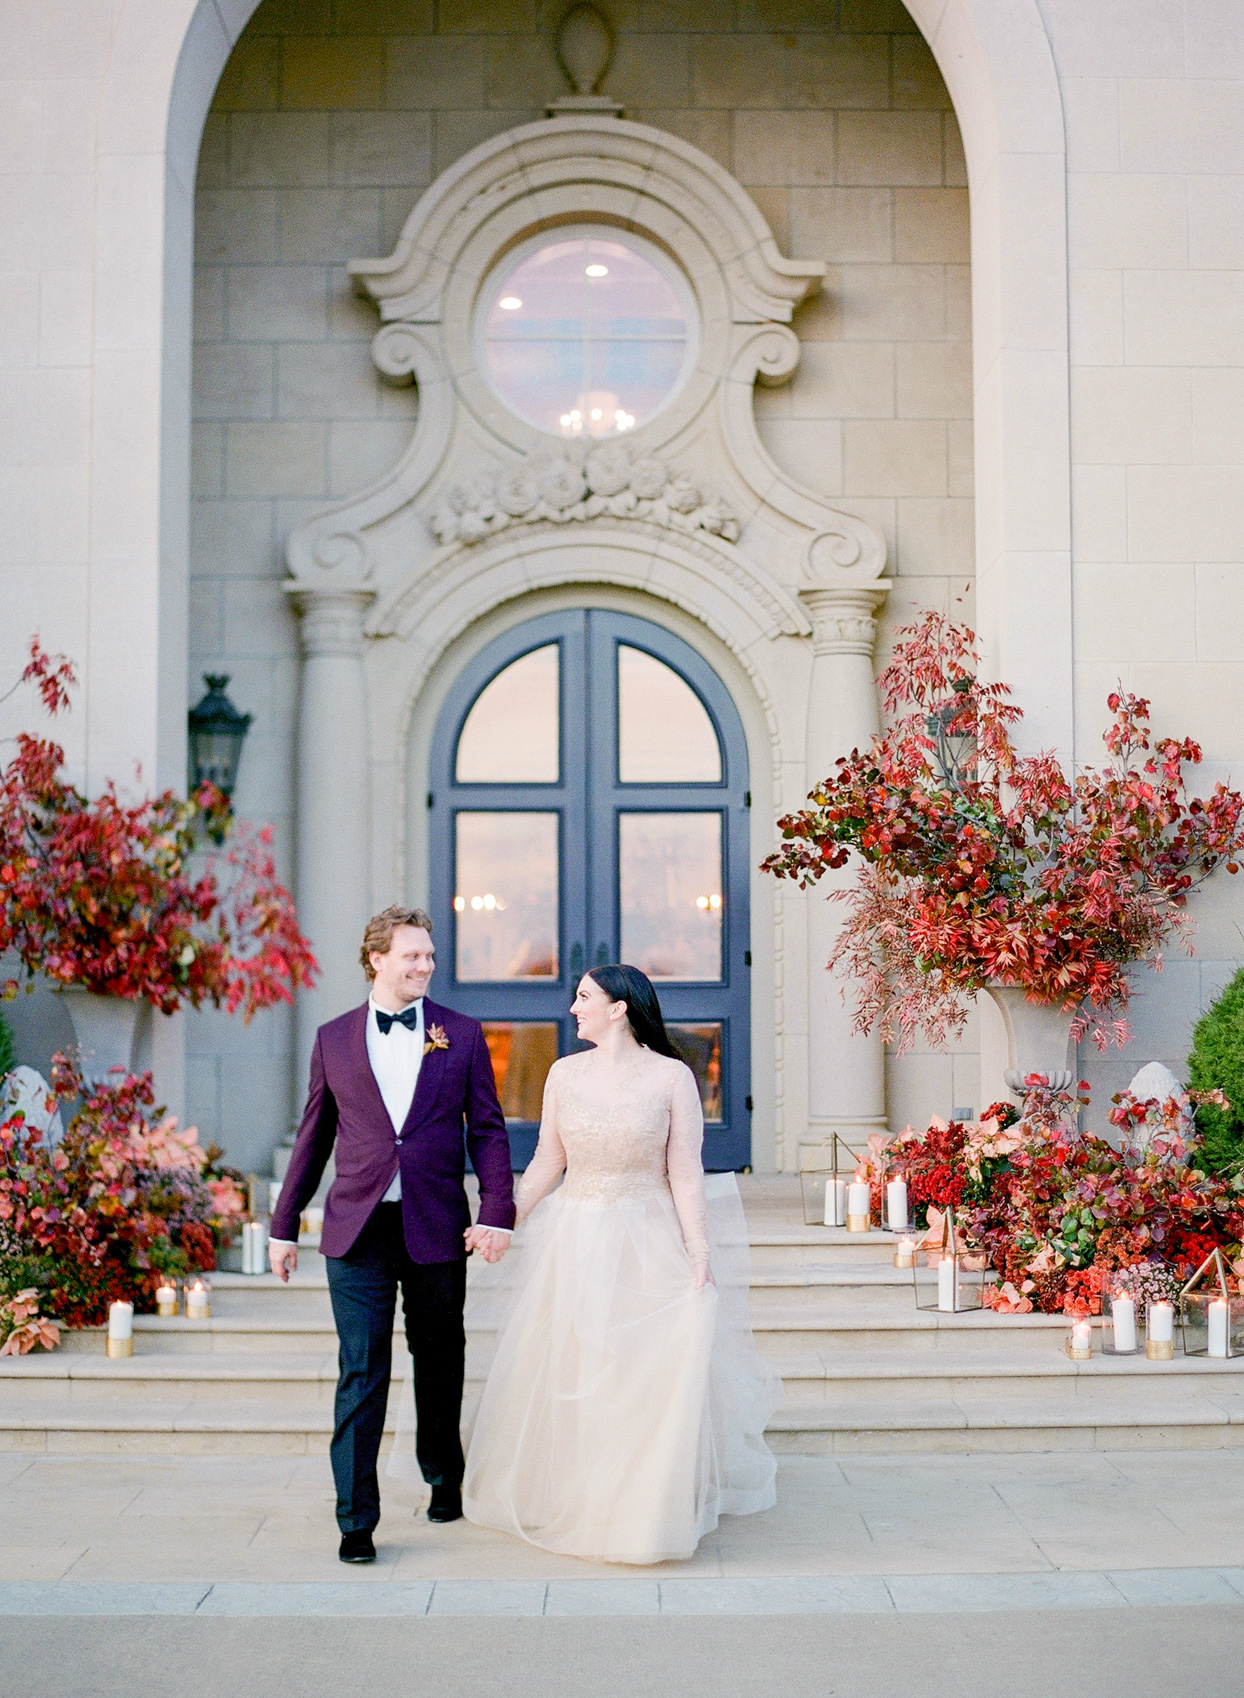 bride in white gold and groom in purple jacket walking together